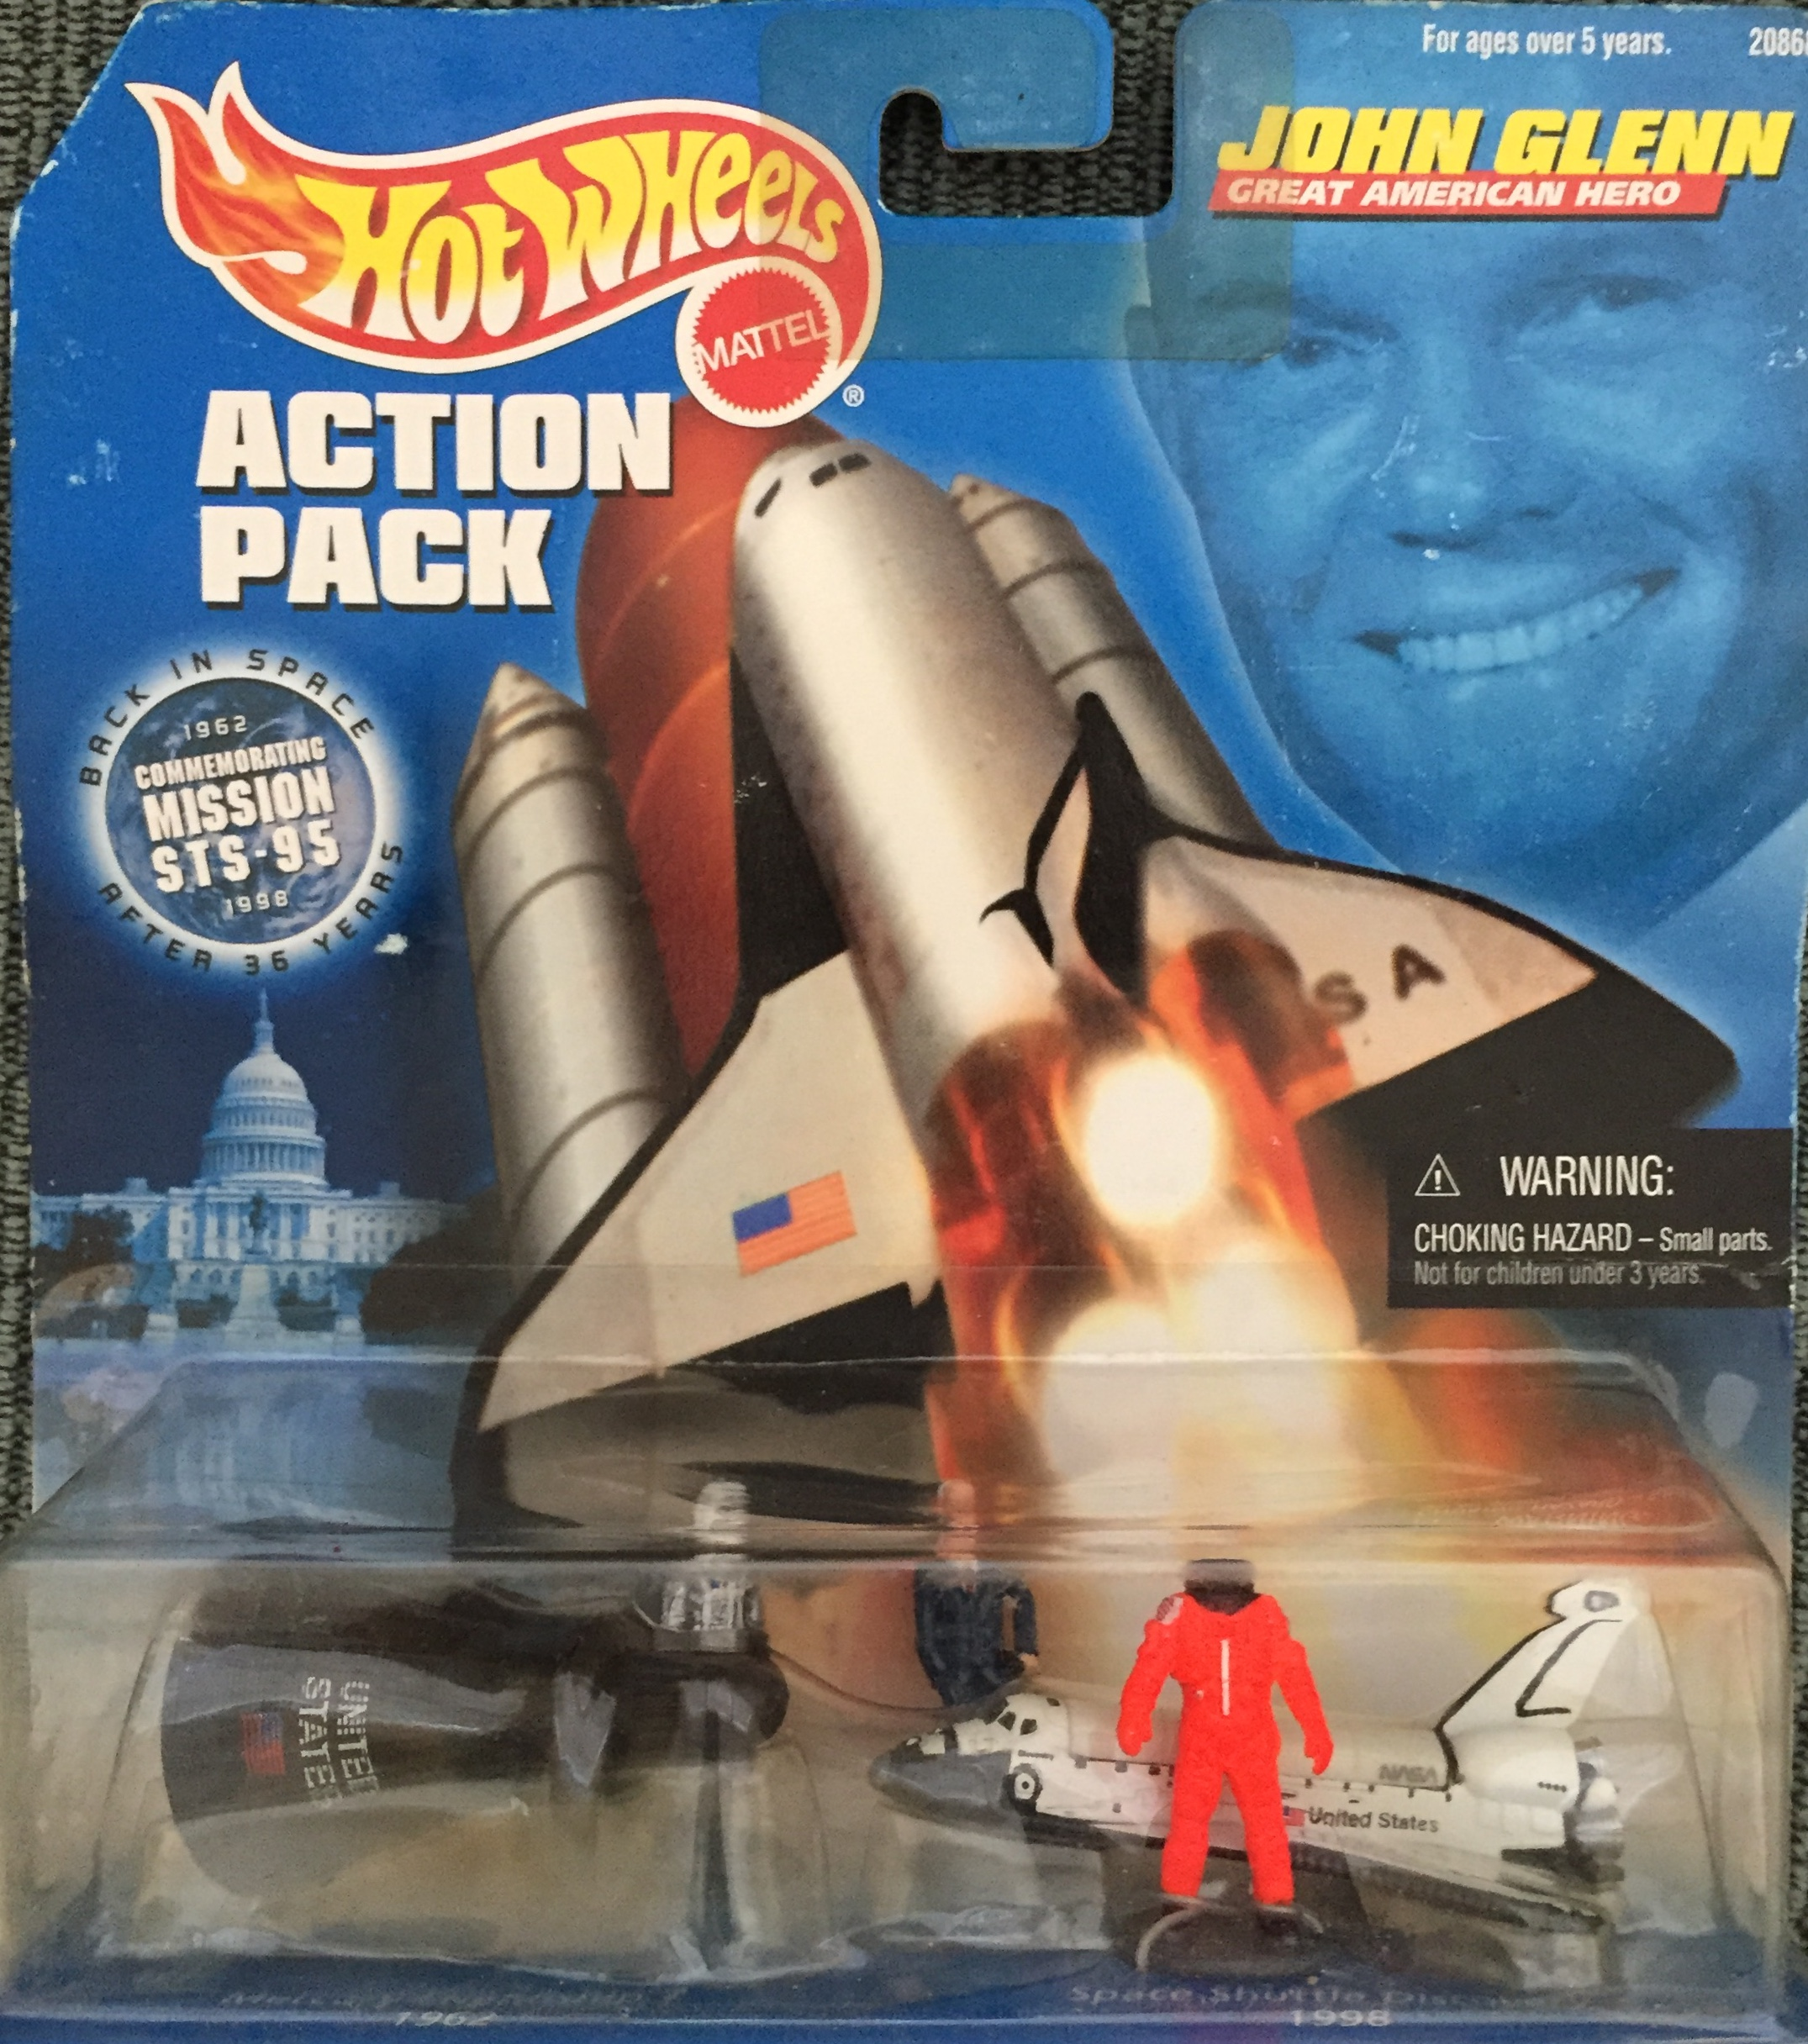 John Glenn Action Pack